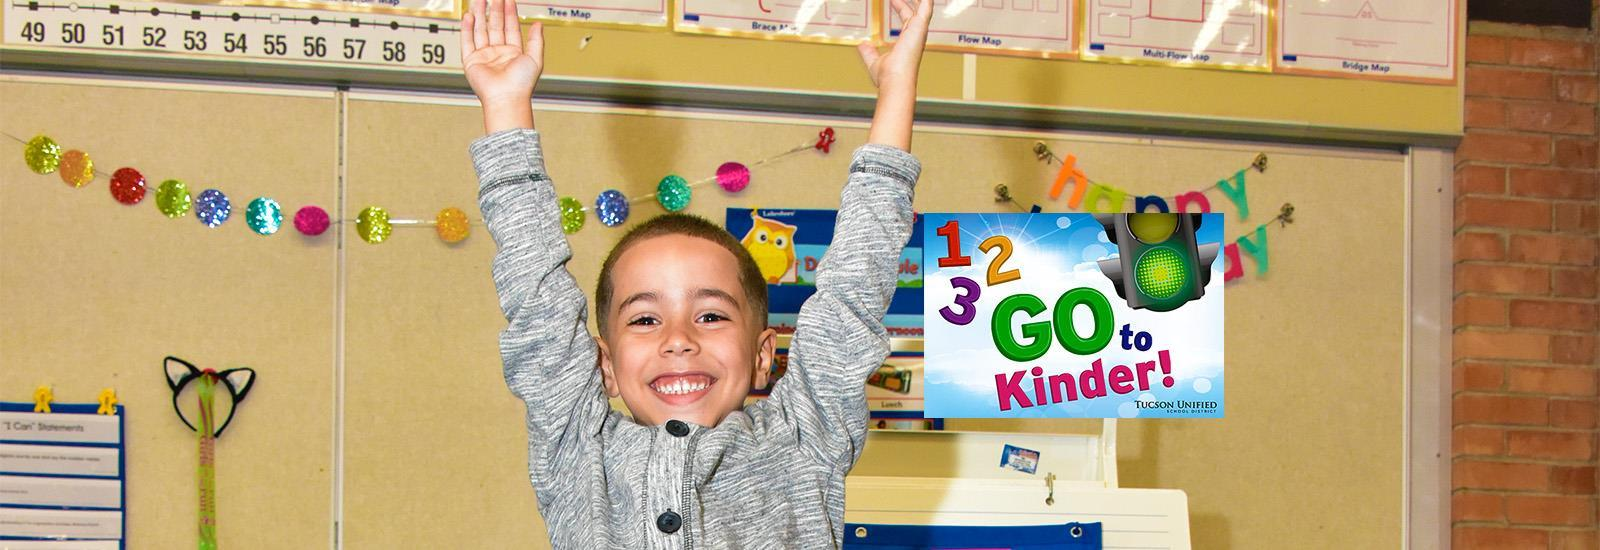 Join us for Kinder Fair! Jan. 25 at Schumaker